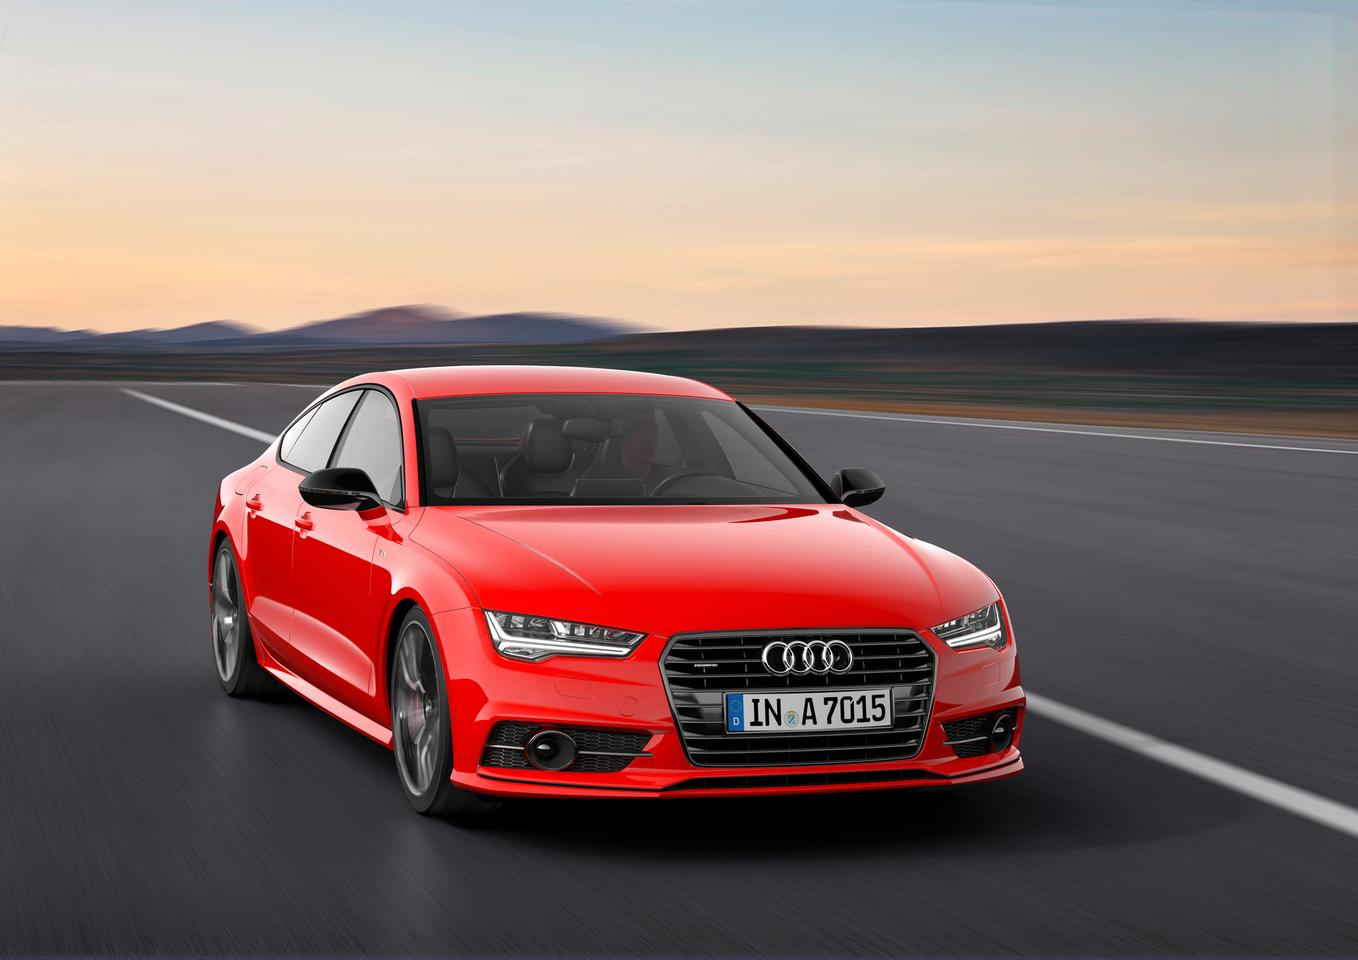 Audi's A7 3.0 TDI competition is more powerful than the standard car